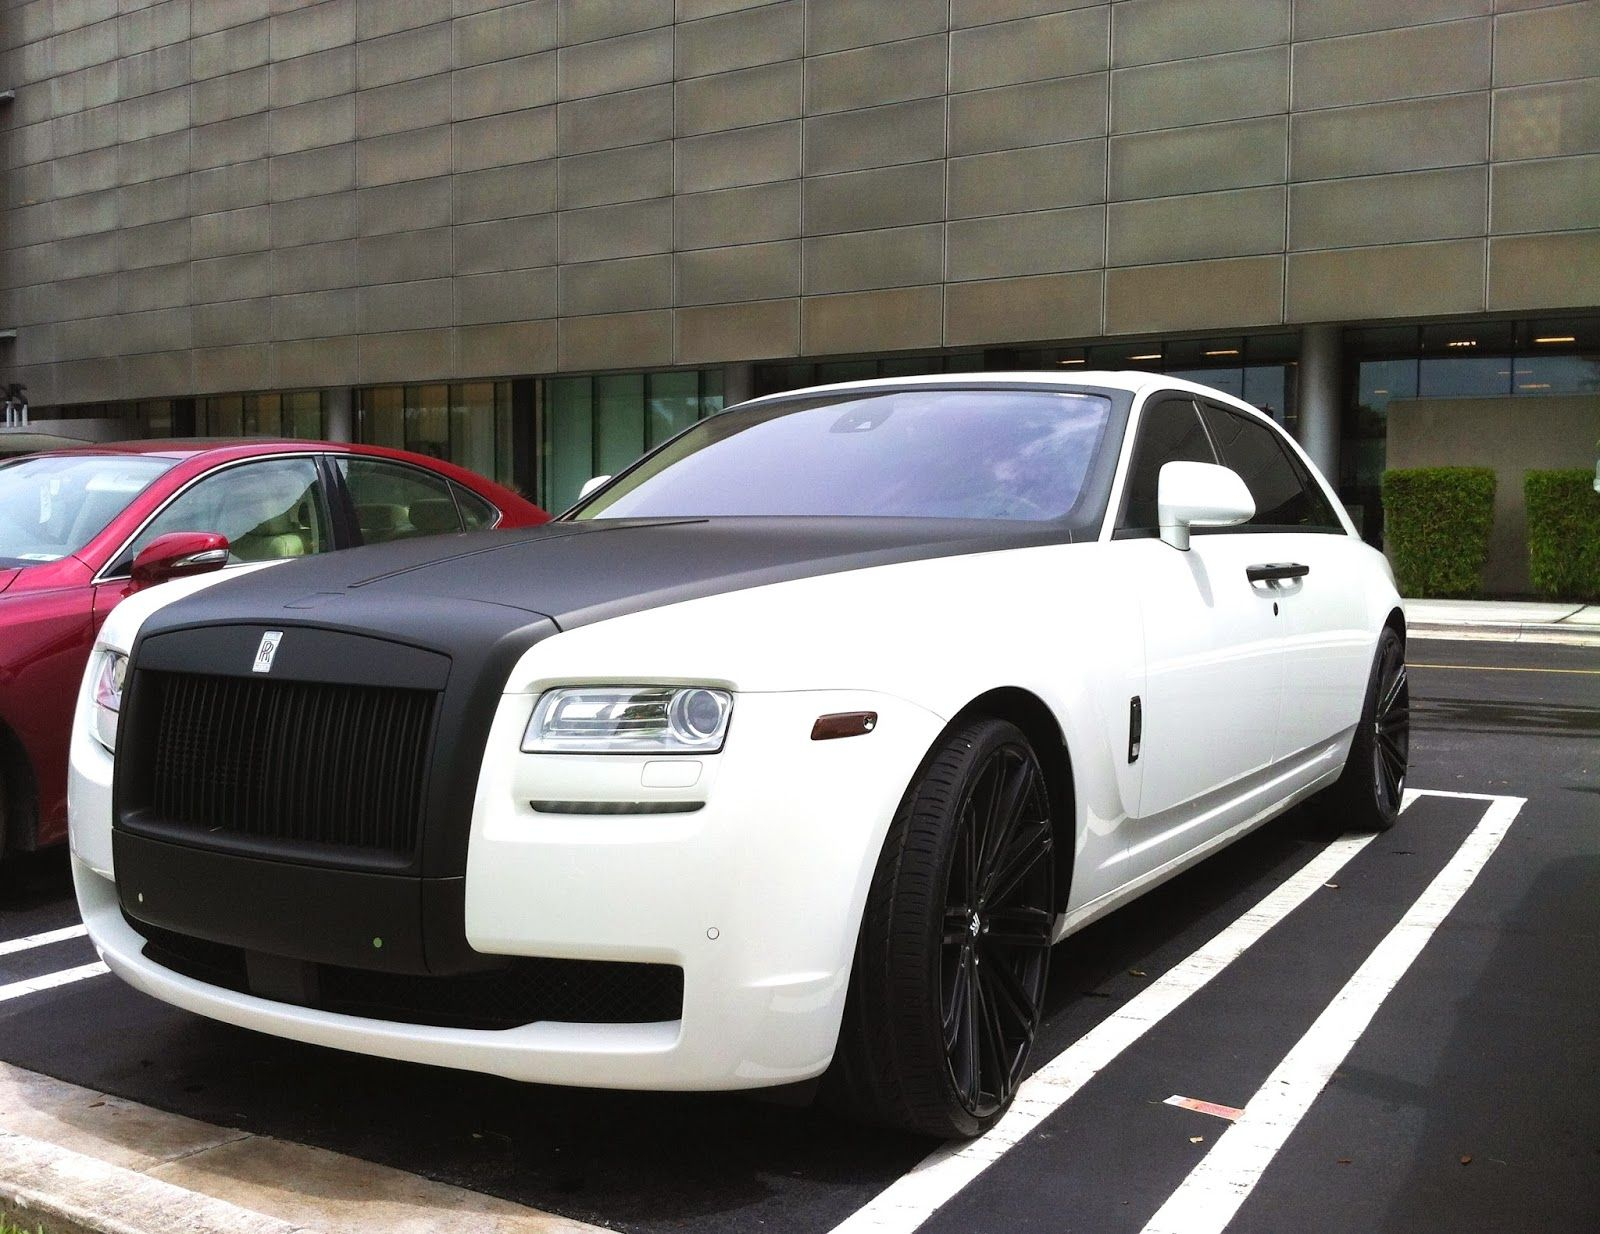 Rolls royce ghost with carbon fiber trim exotic cars on the